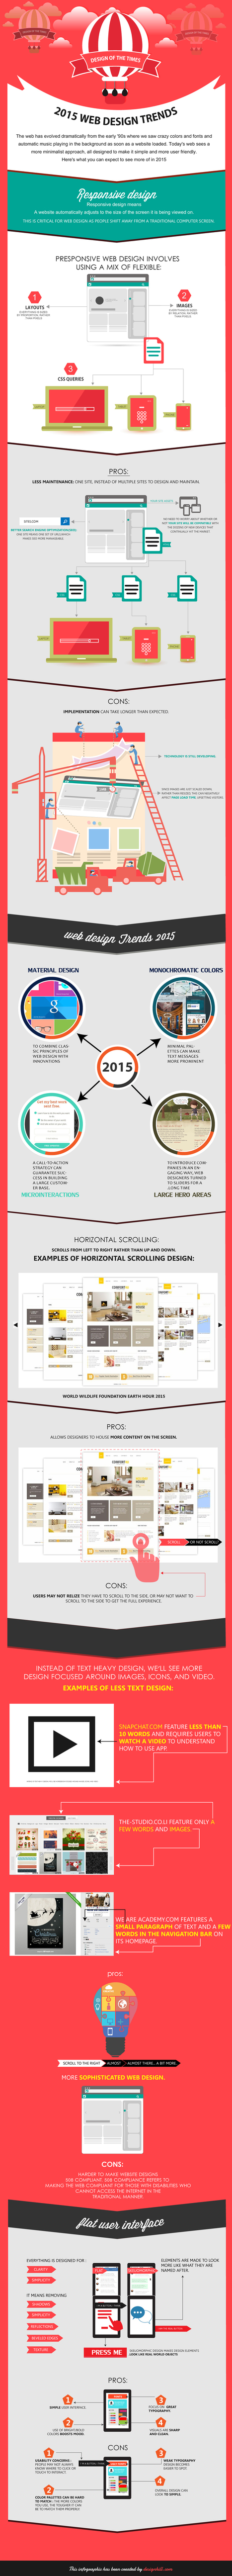 [Infographic] Web Design Trends To Look Out For In 2015 | Designhill | Scoop.it